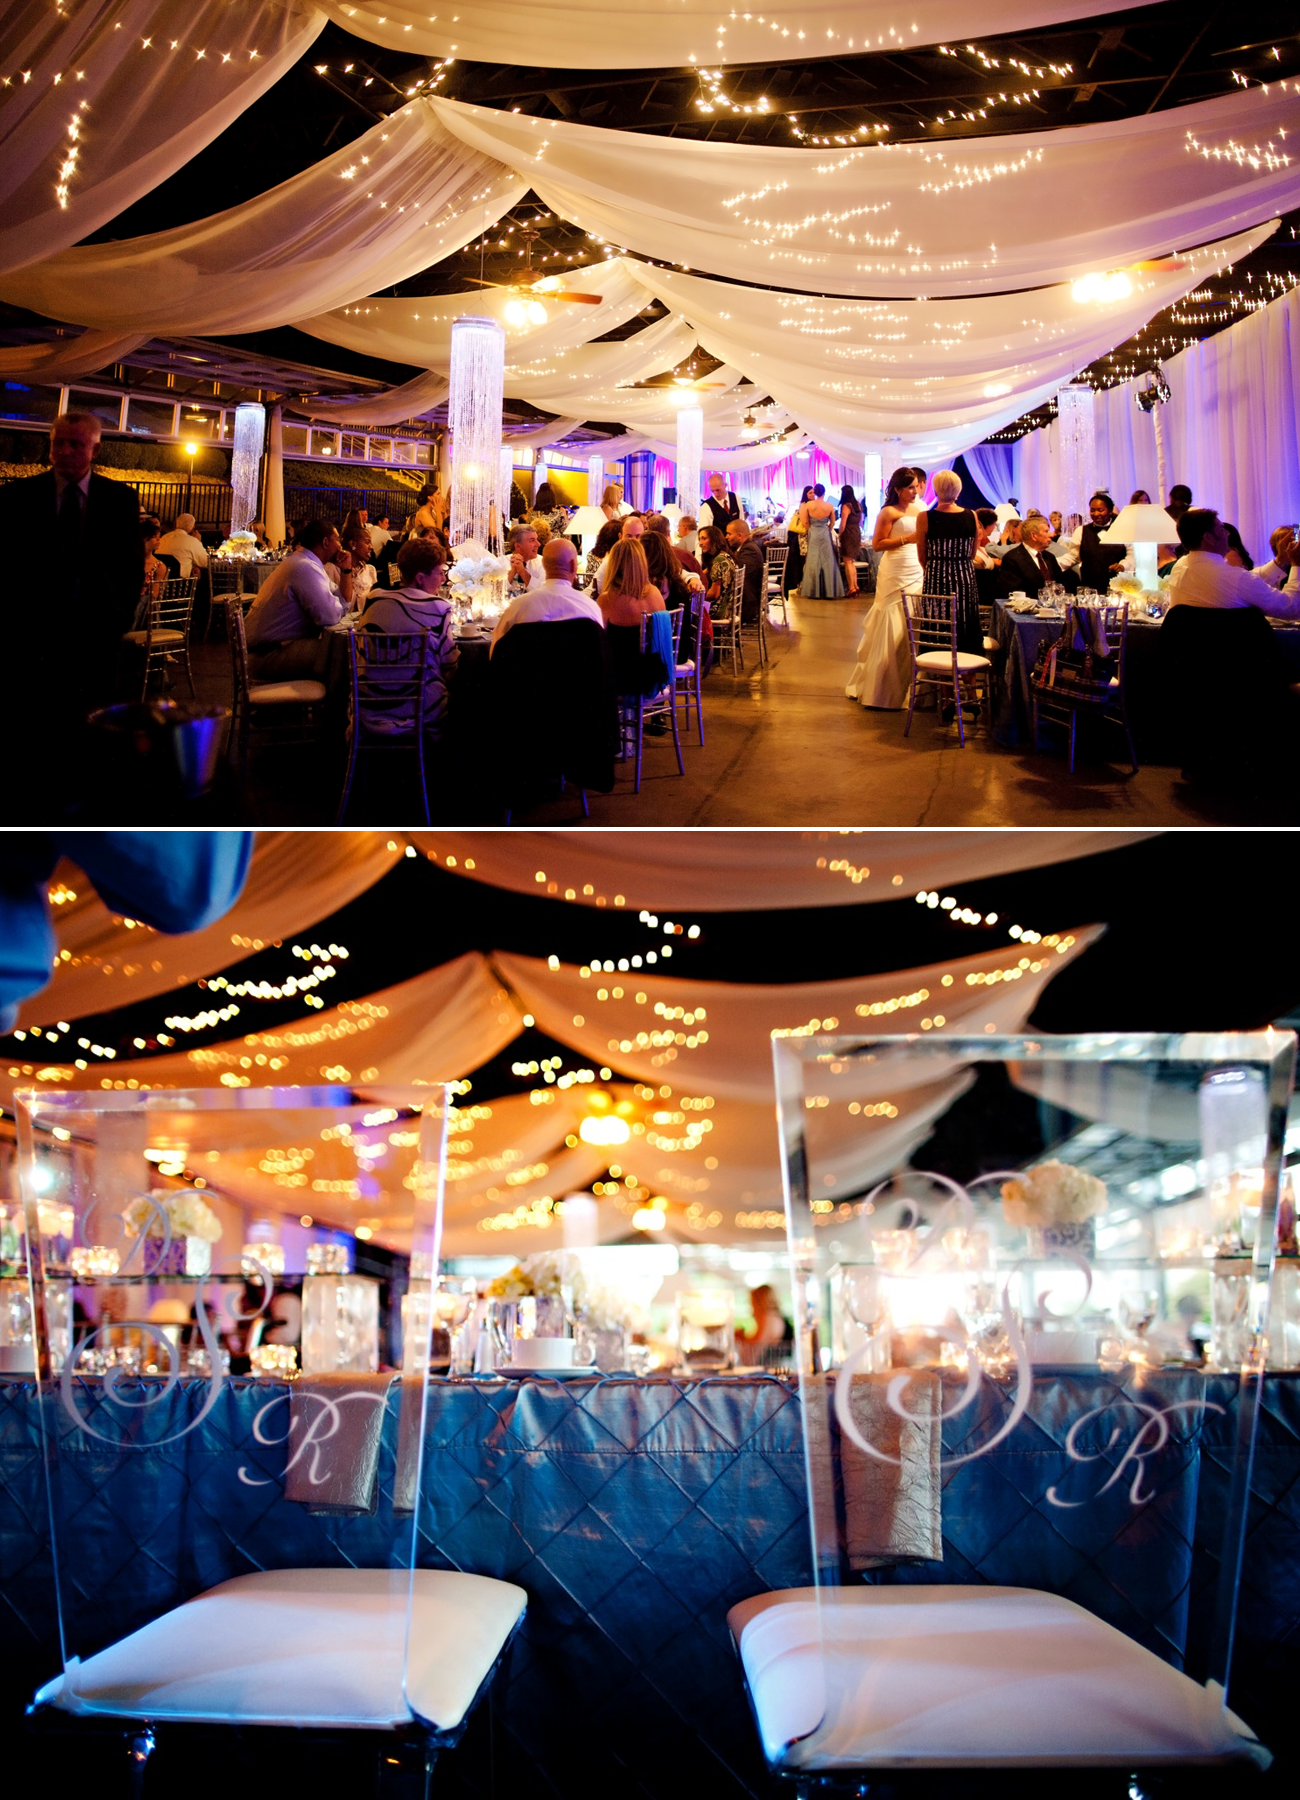 Real-weddings-tent-wedding-venueglamourous-decor.original